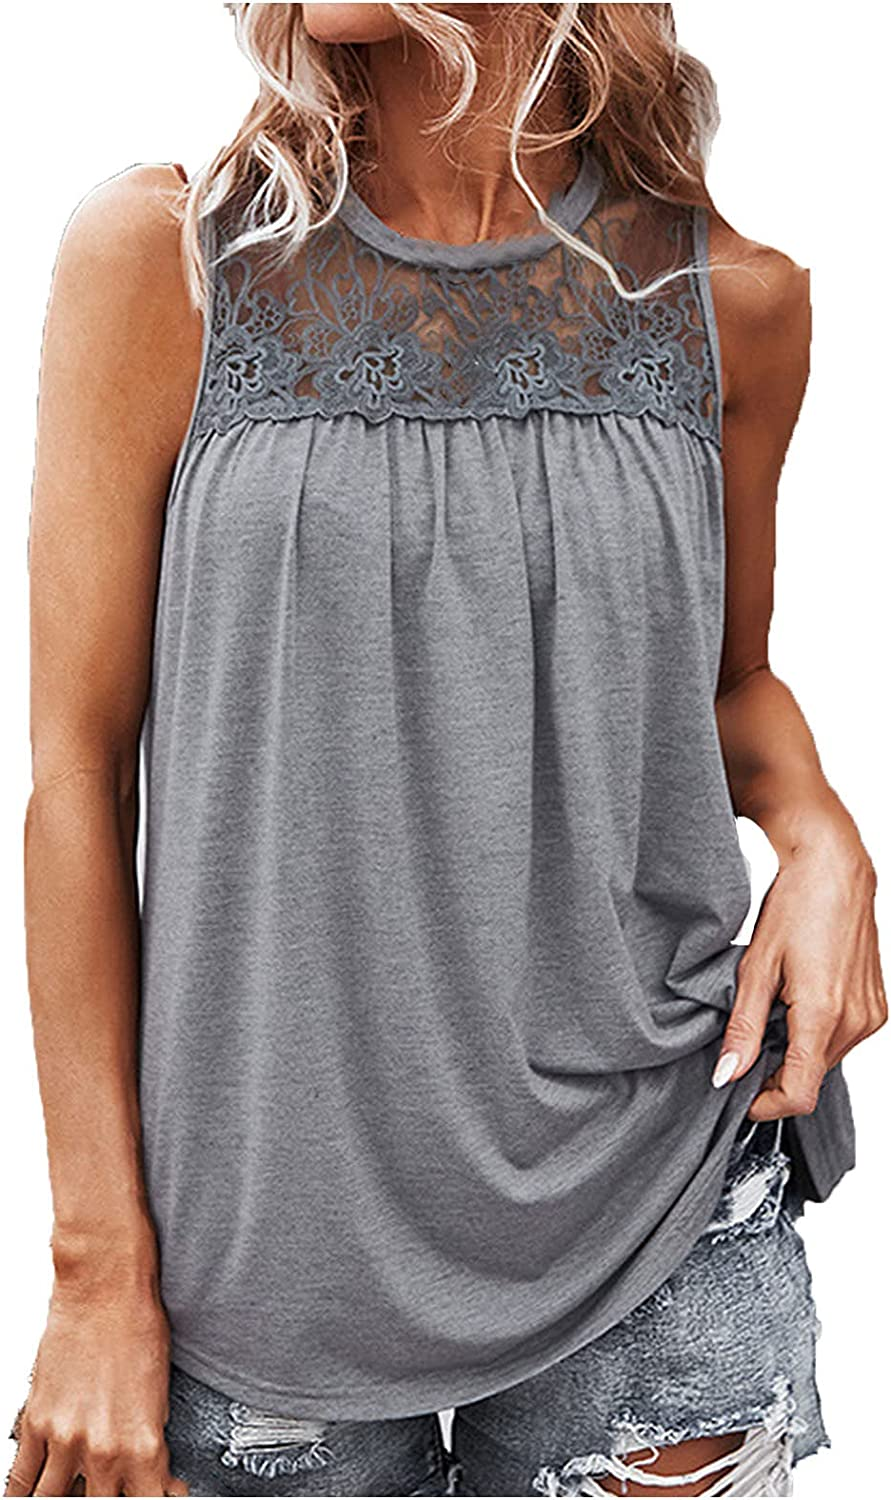 Women's Solid Casual Sleeveless Shirt Lace O-Neck Blouse Top Summer Pleated Sling Tank Tops